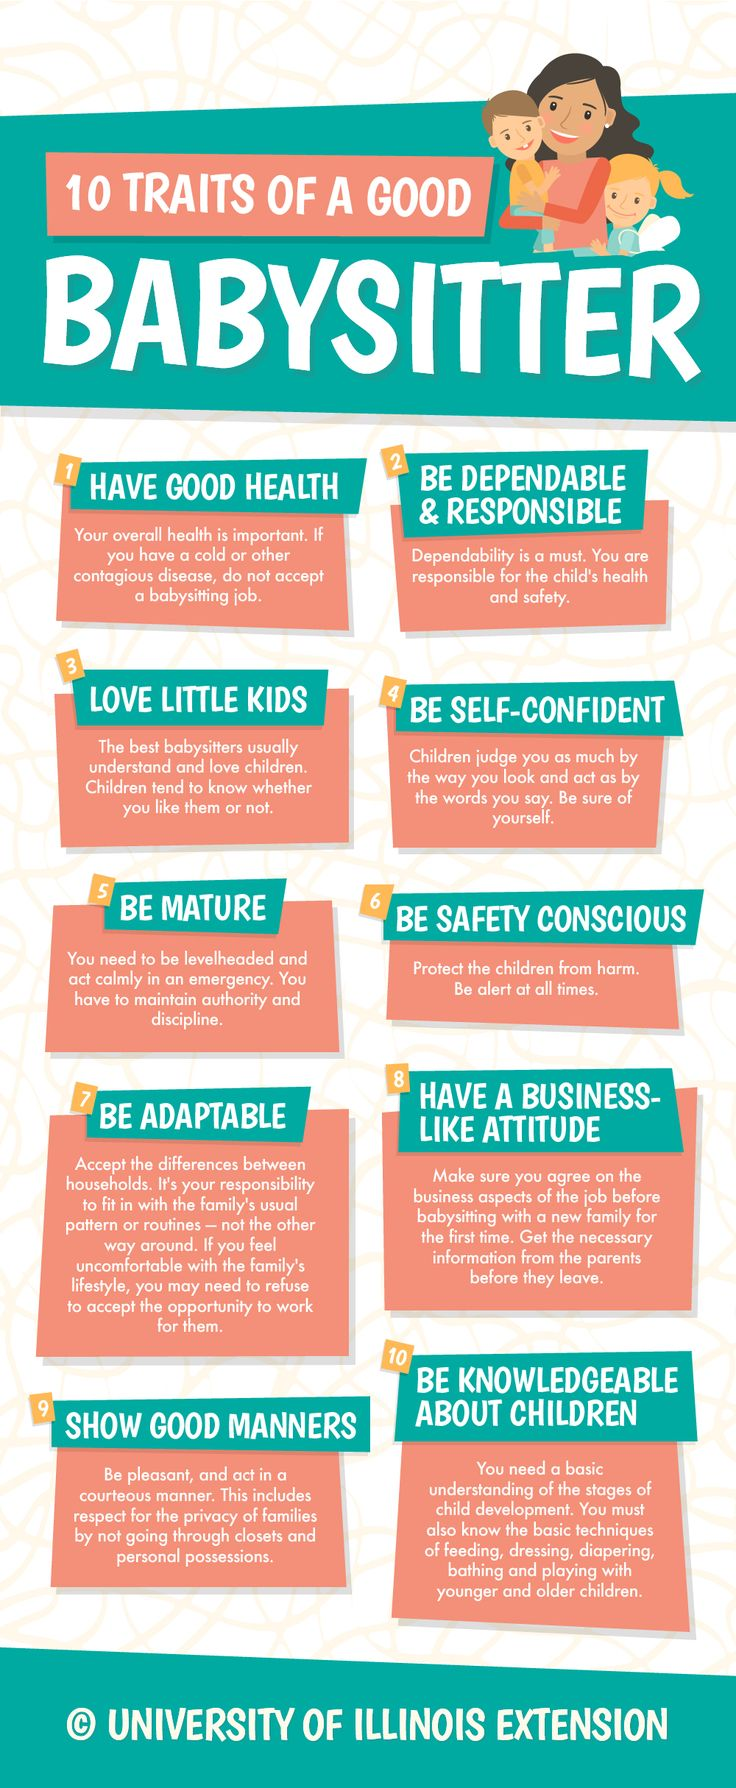 10 Traits of a Good Babysitter #infographic